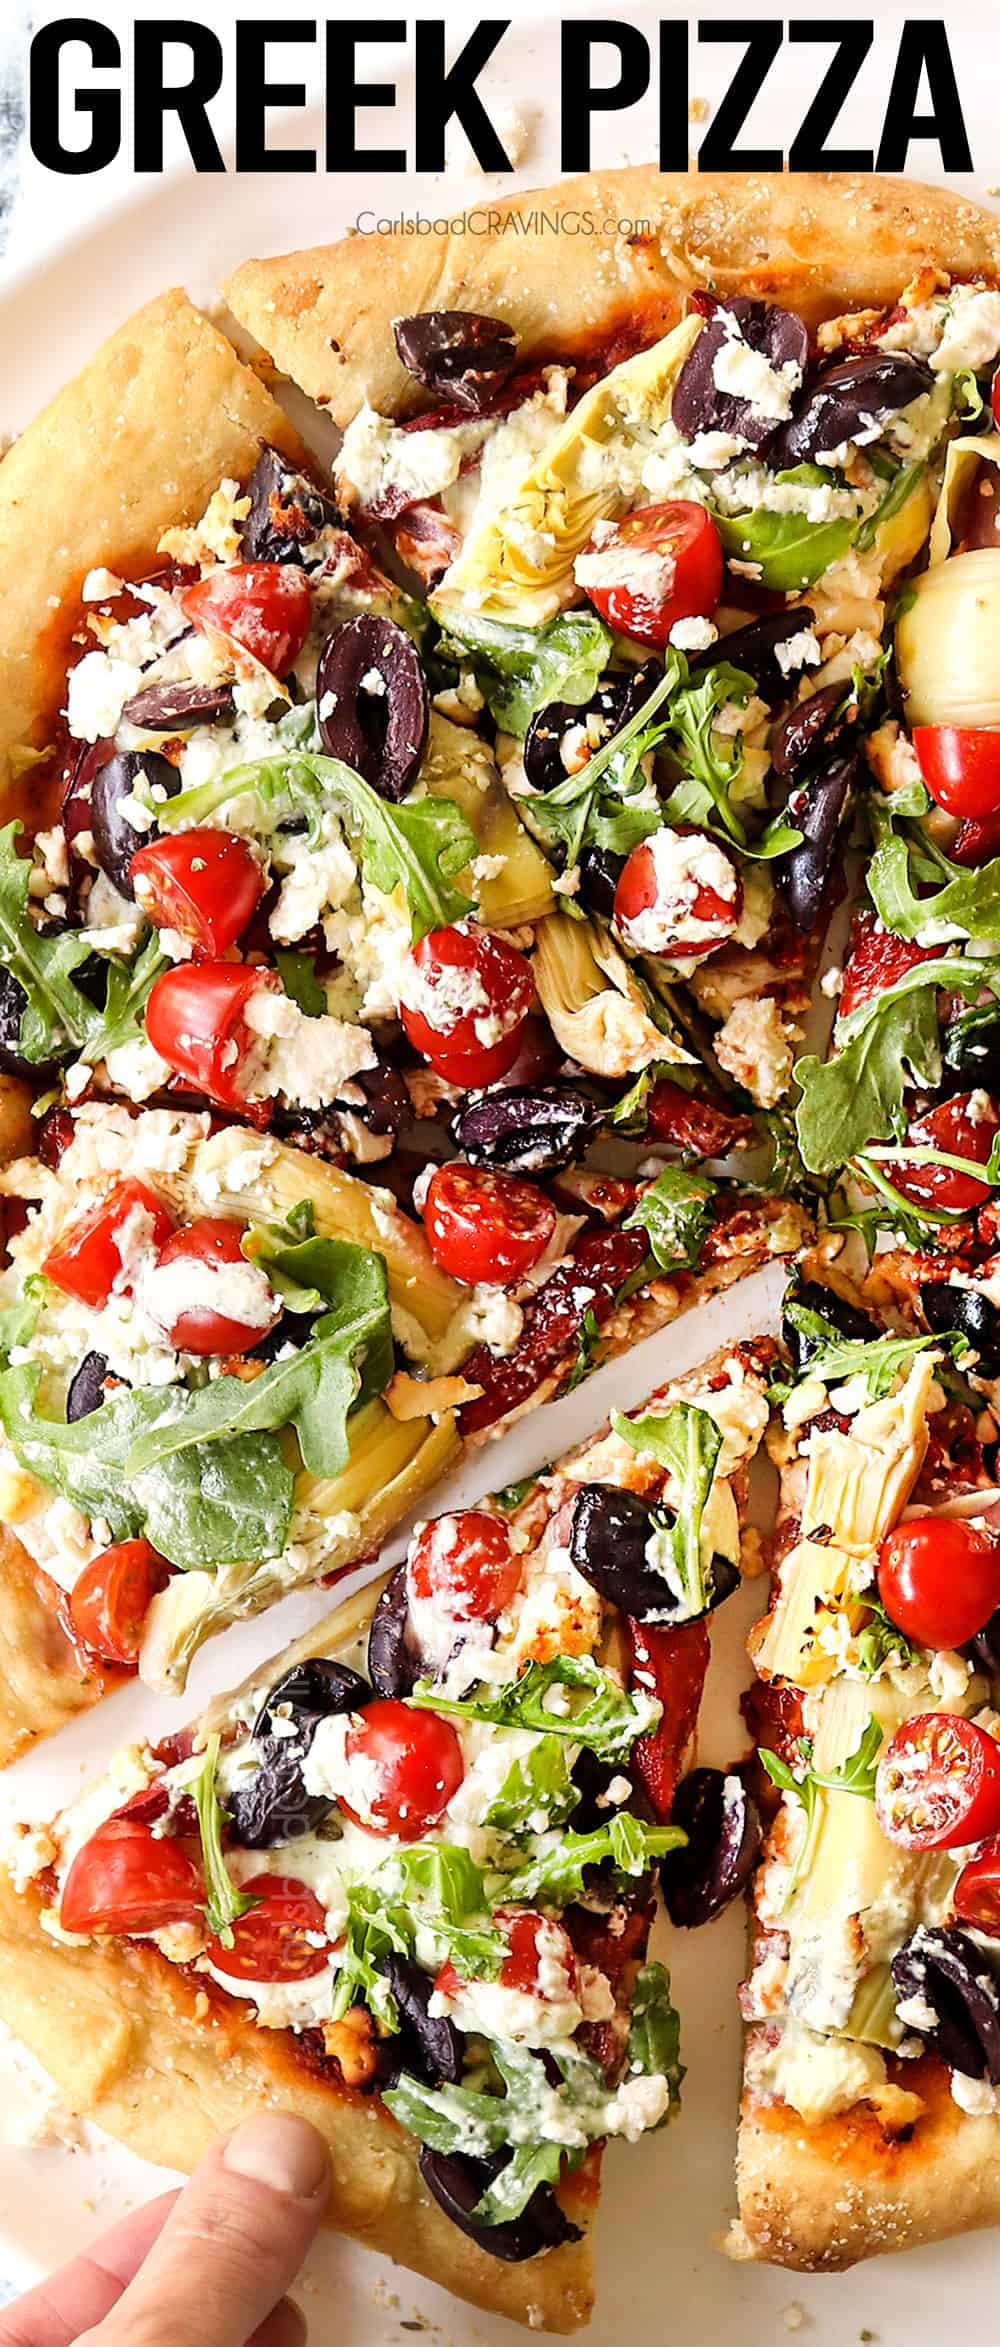 top view up close of a slice of Greek pizza